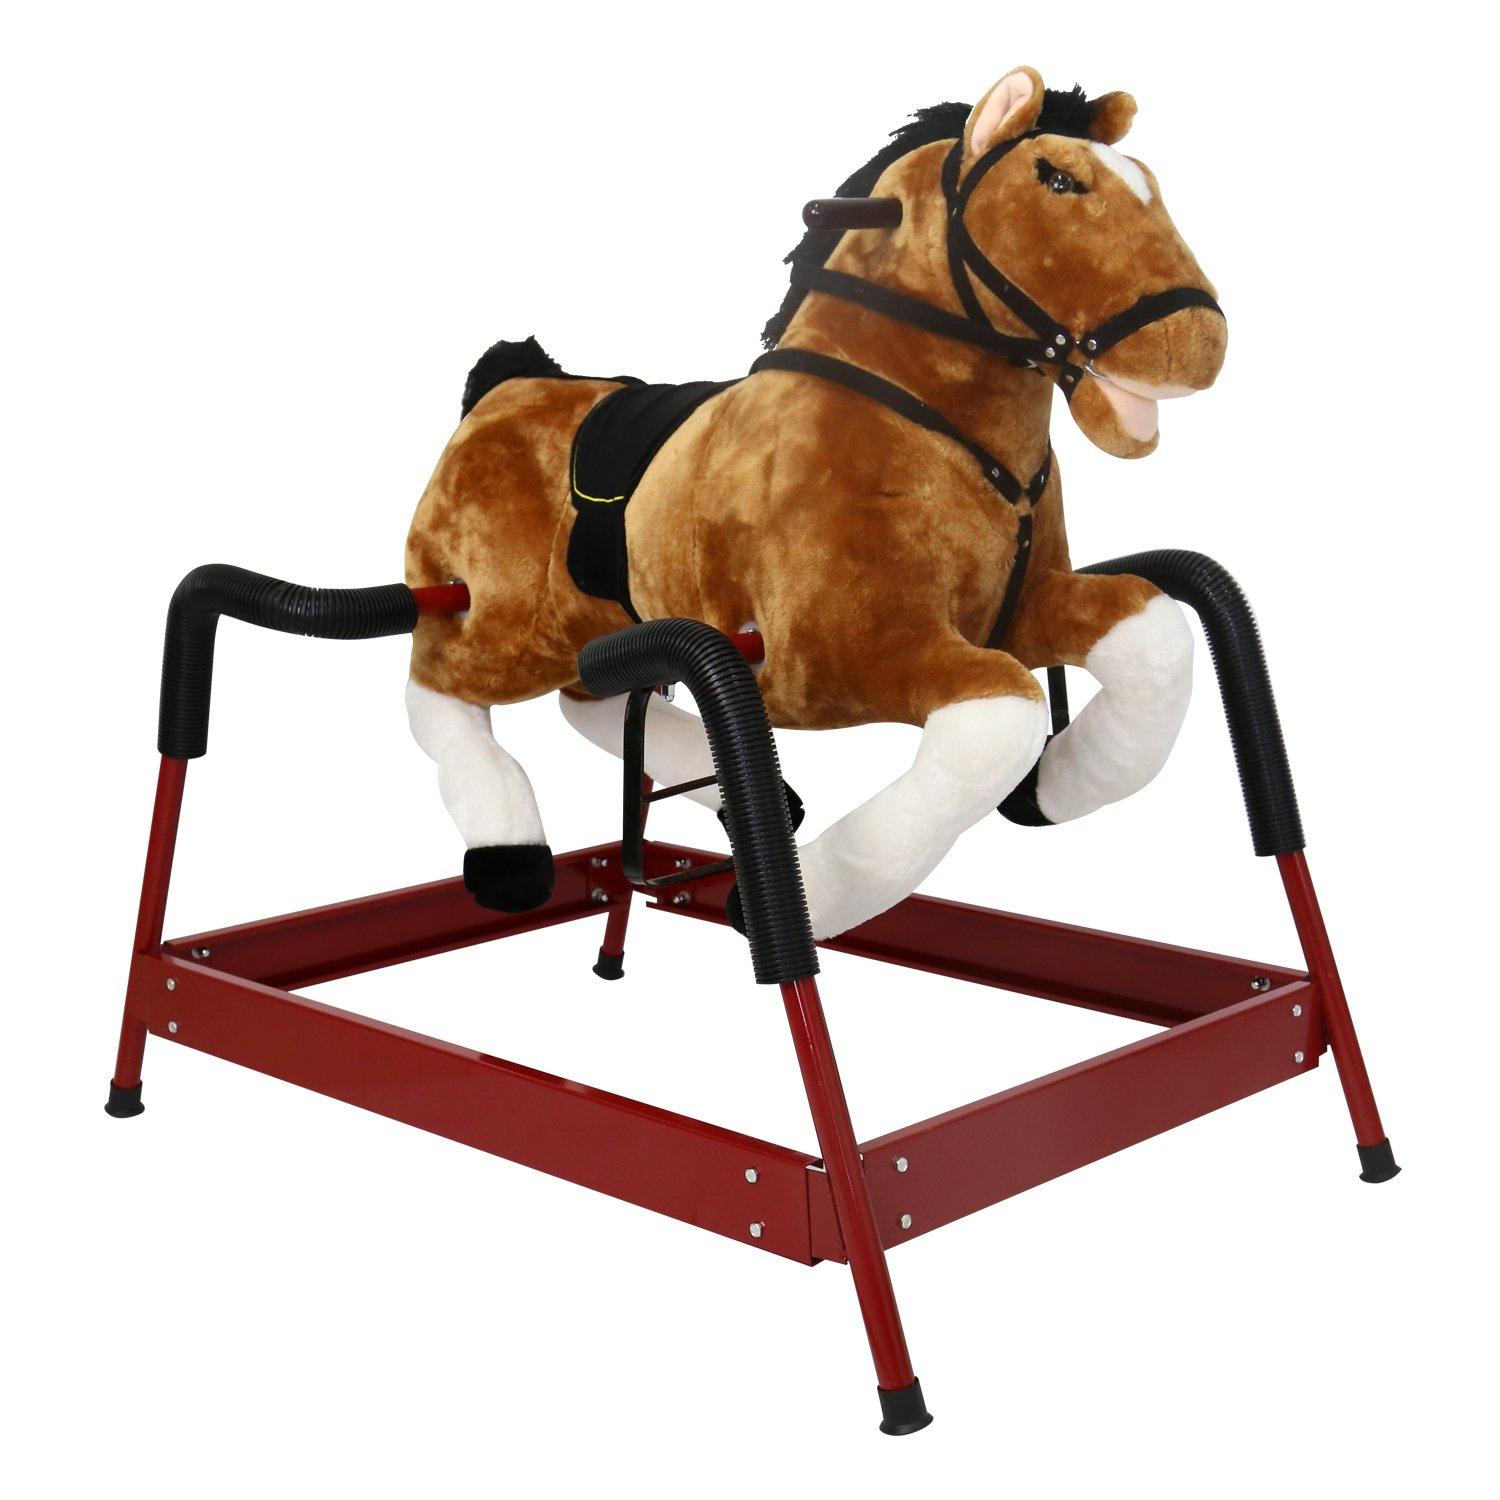 kinborベビーキッズToy Plush Wooden Rocking Horse Boy Riding Rocker withサウンド、ダークブラウン   B07544M3RP